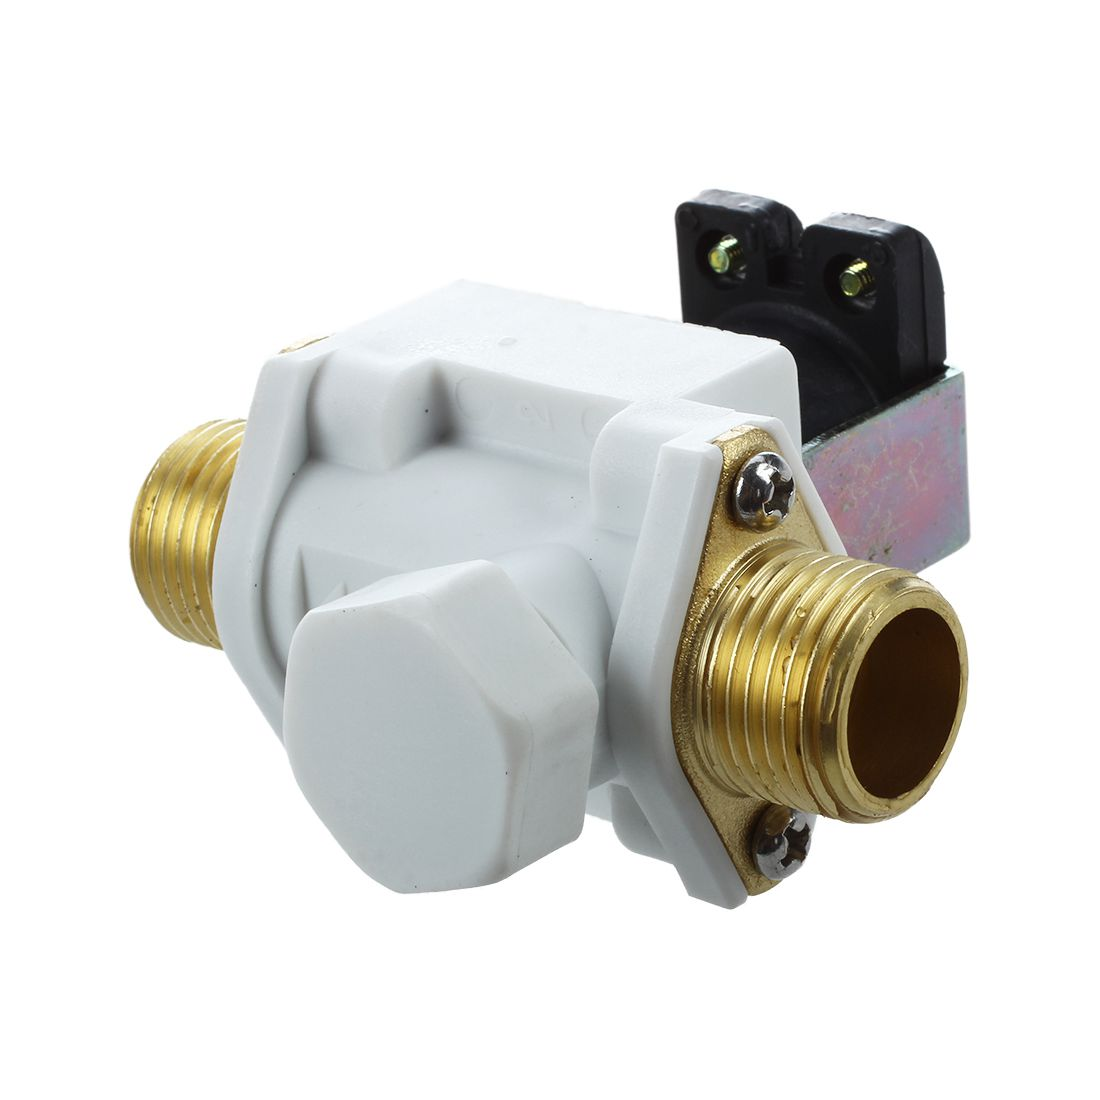 DC 12V Solar Water Heater Solenoid Coils For Pressure Solar Water Heater And The Same Type Of Water Control Systerm